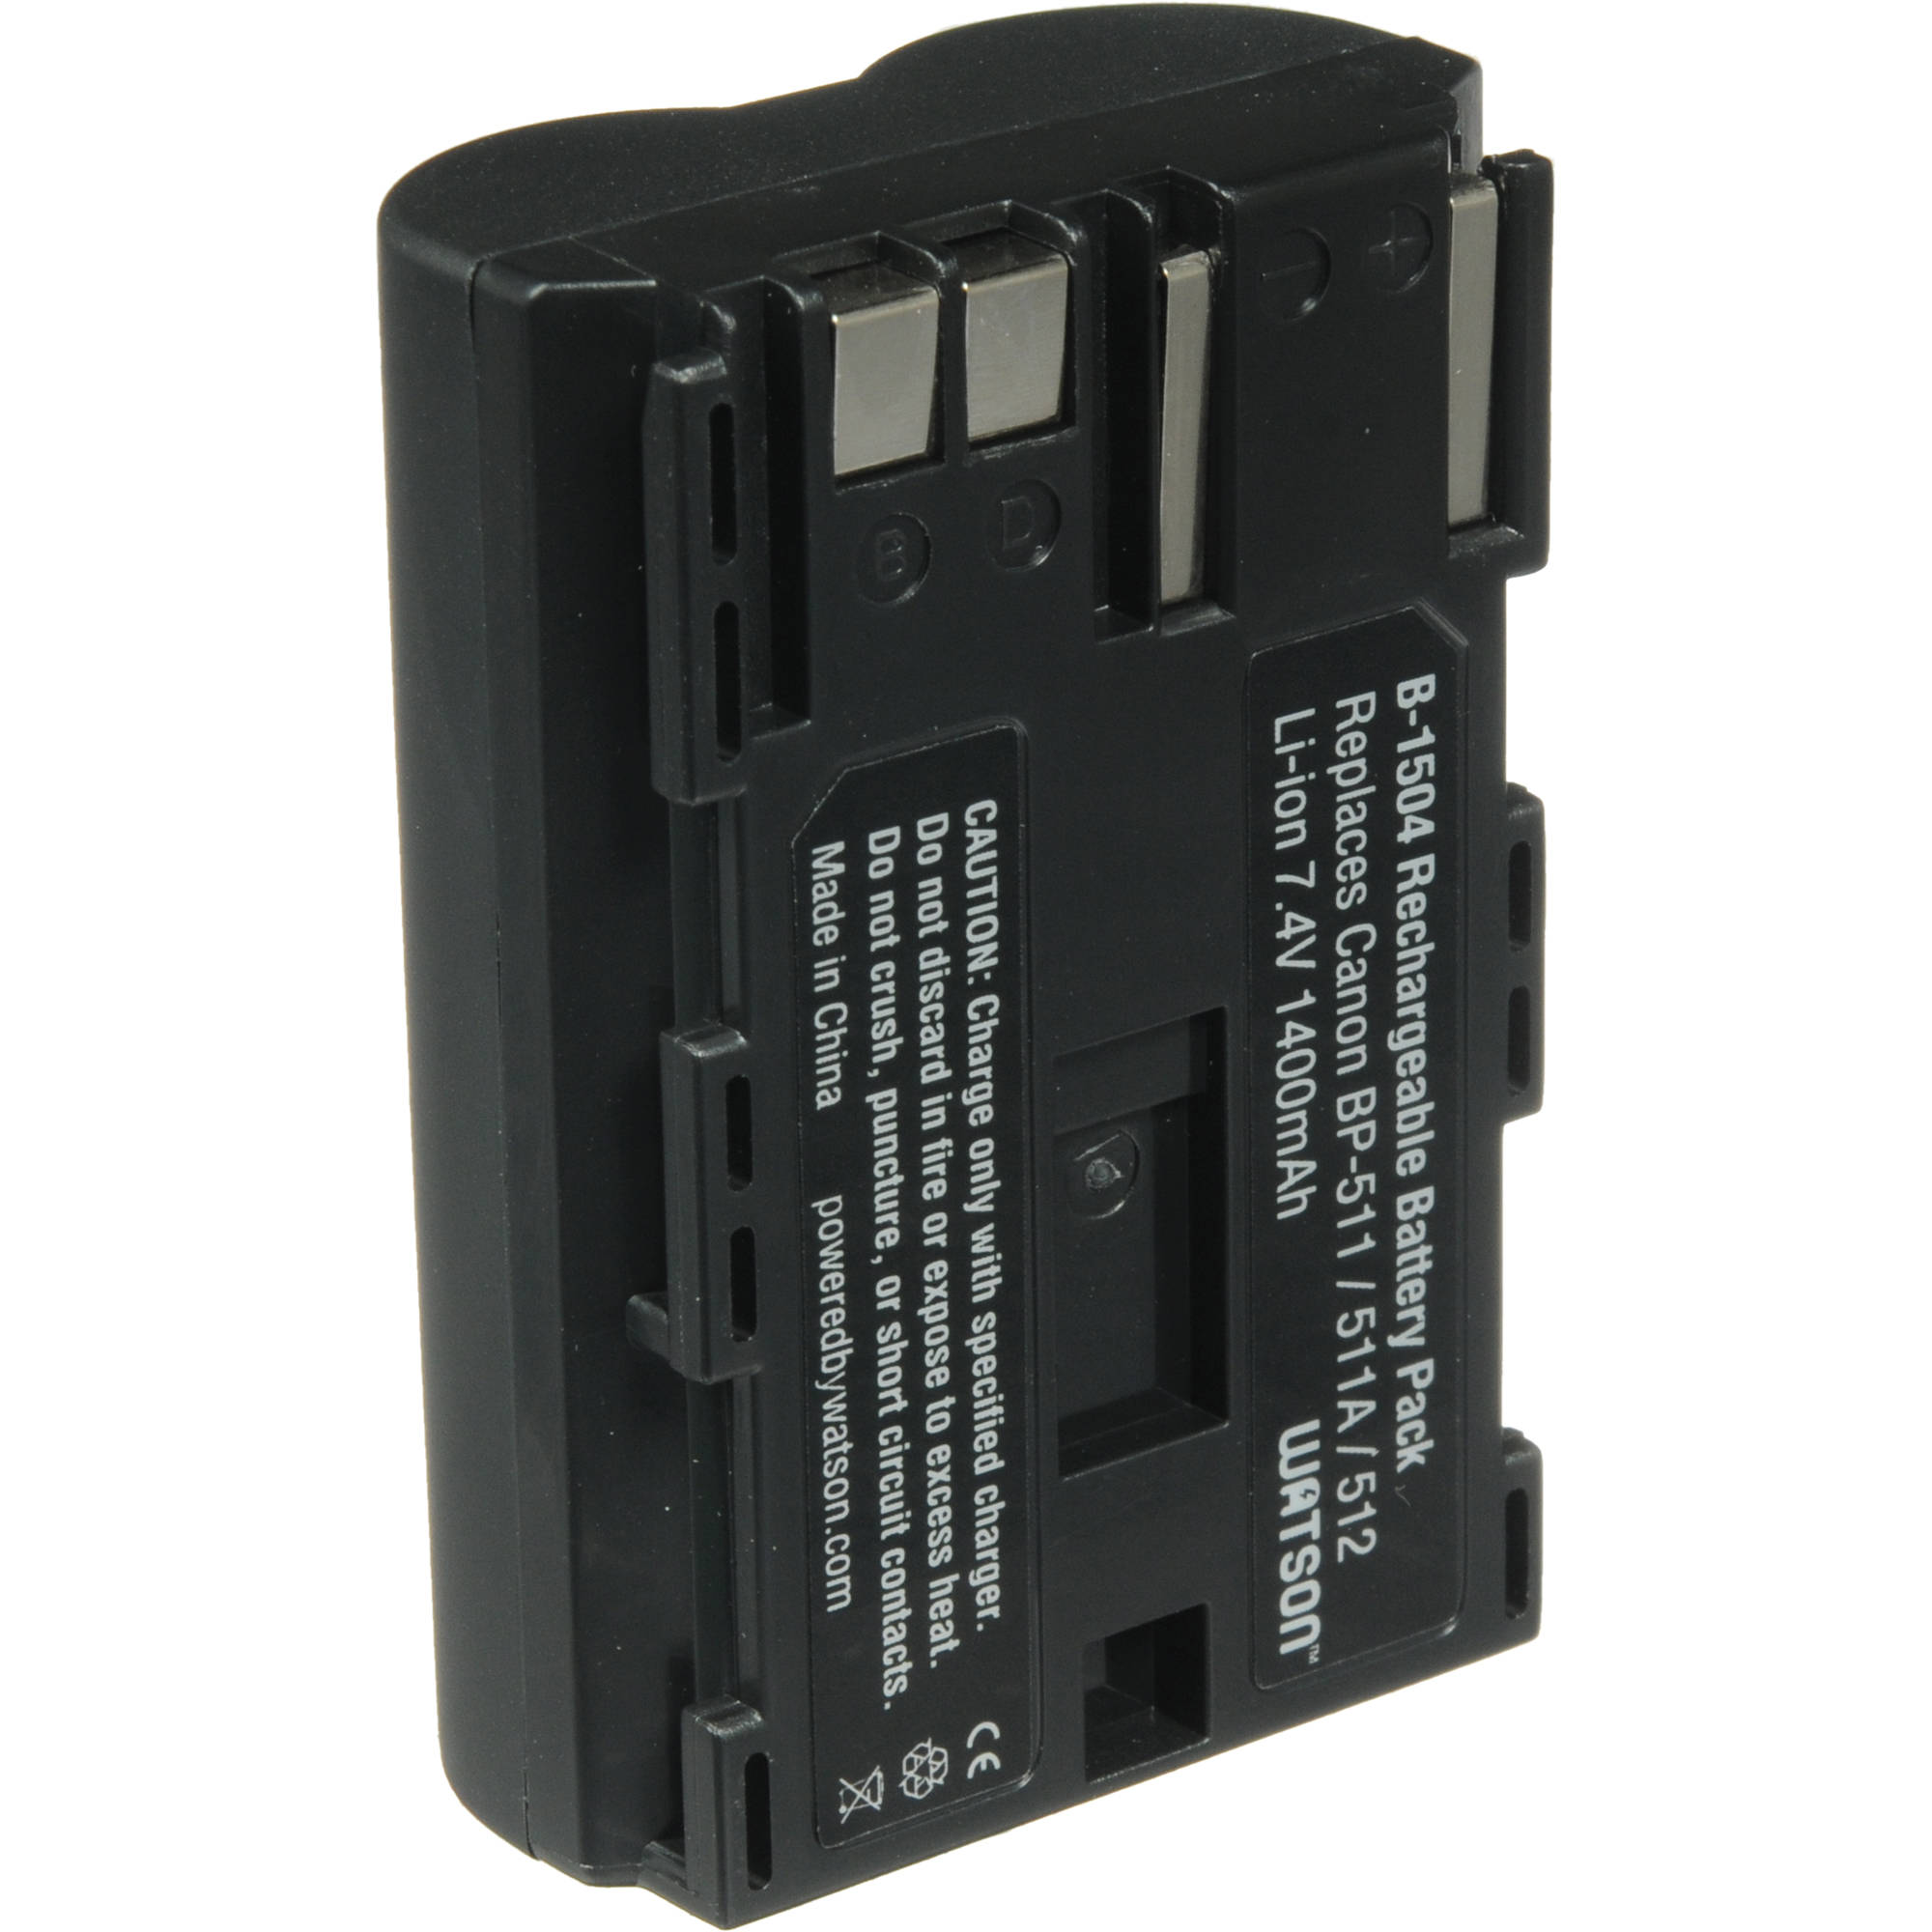 Lithium Ion Battery Pack Watson BP-511A ...